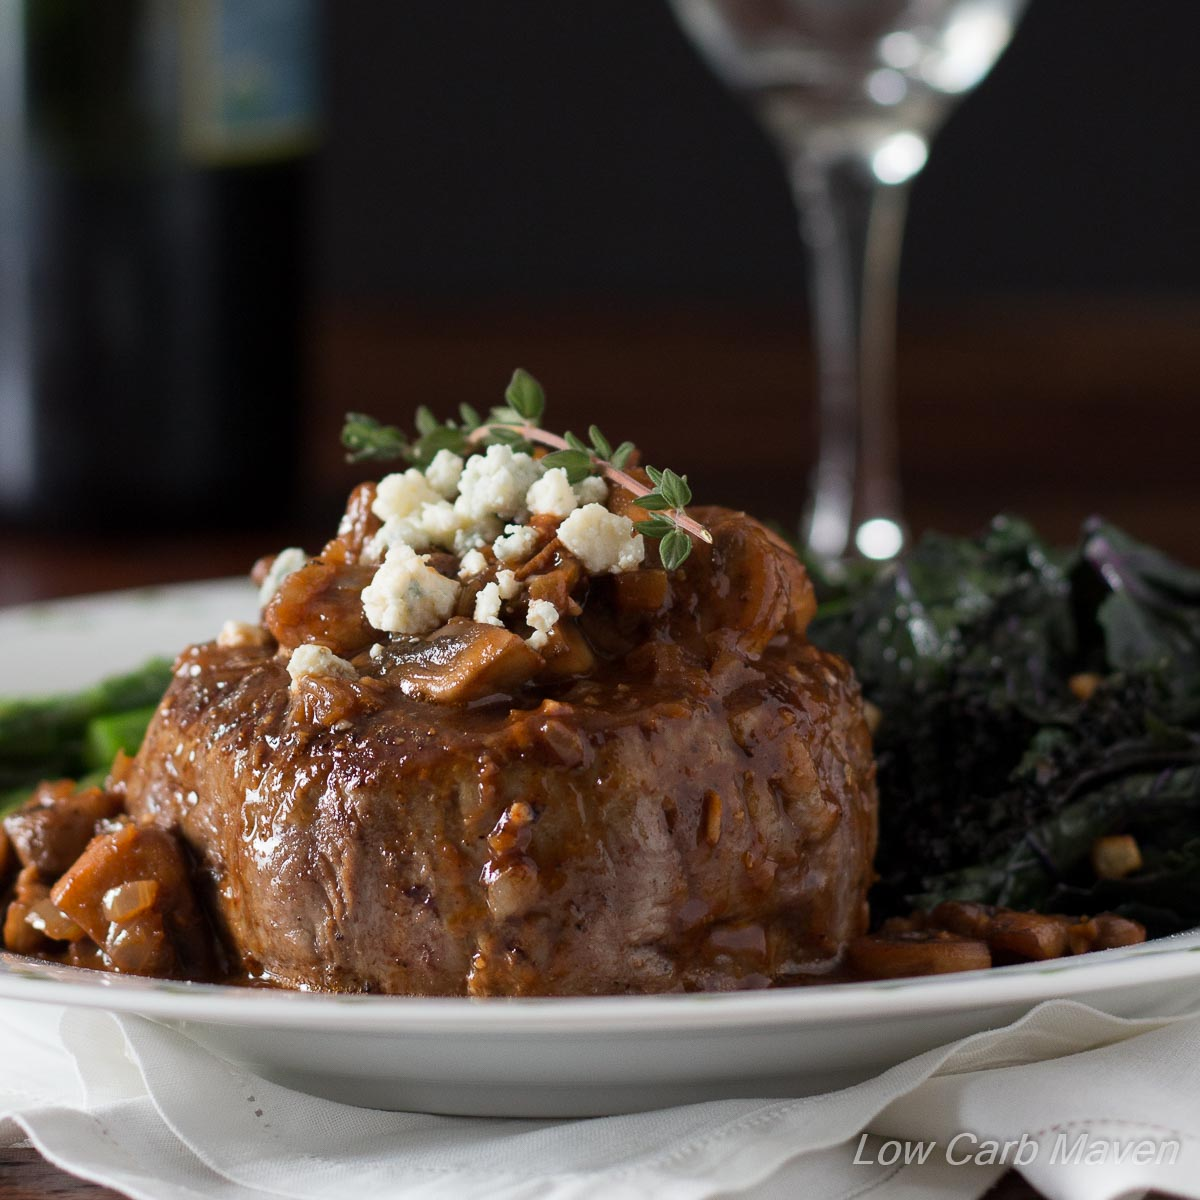 Romantic Filet Mignon Dinner for Two | Low Carb Maven